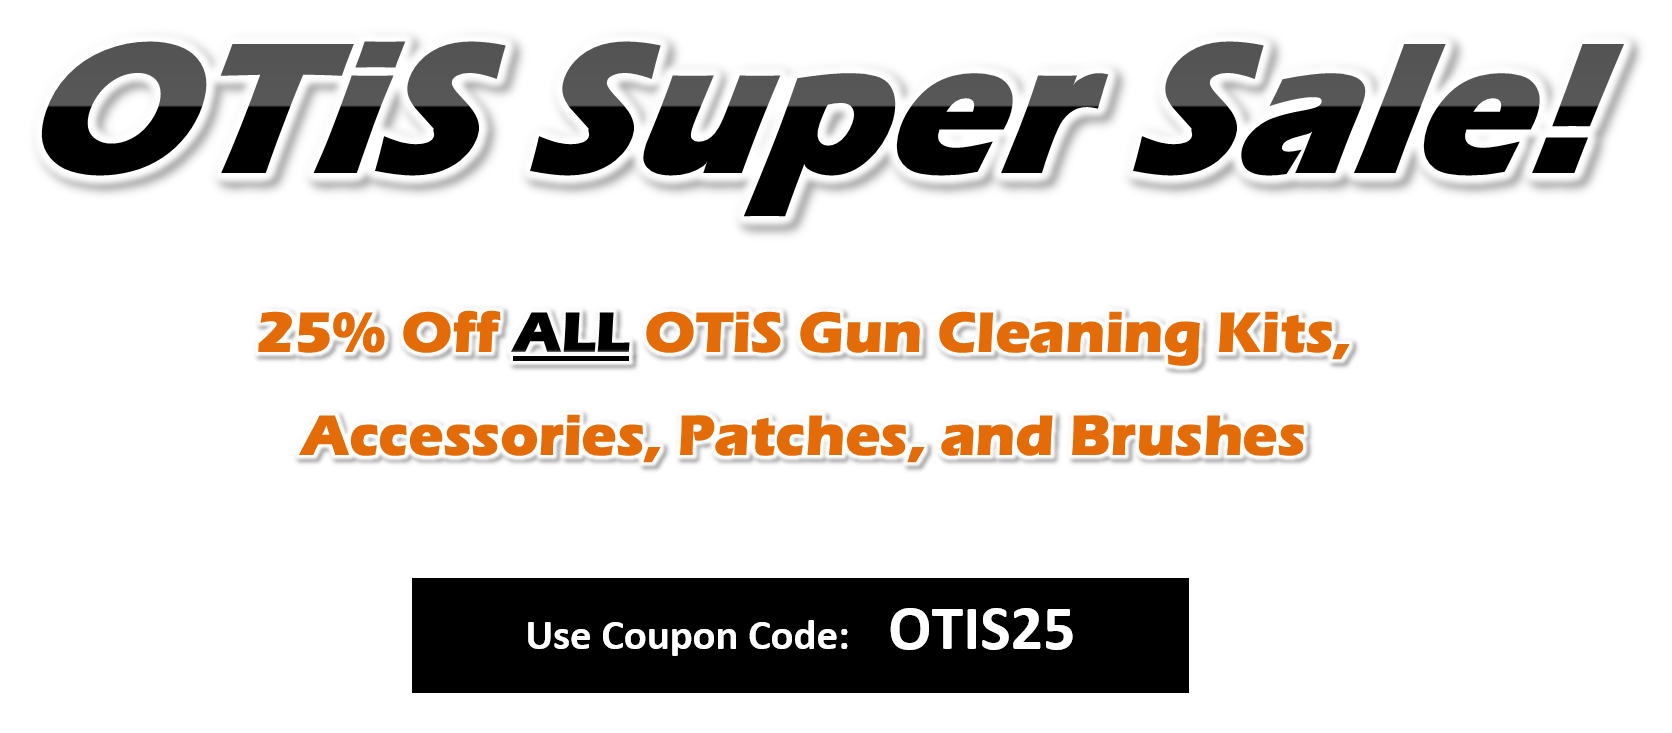 otis-super-sale-banner-1.png